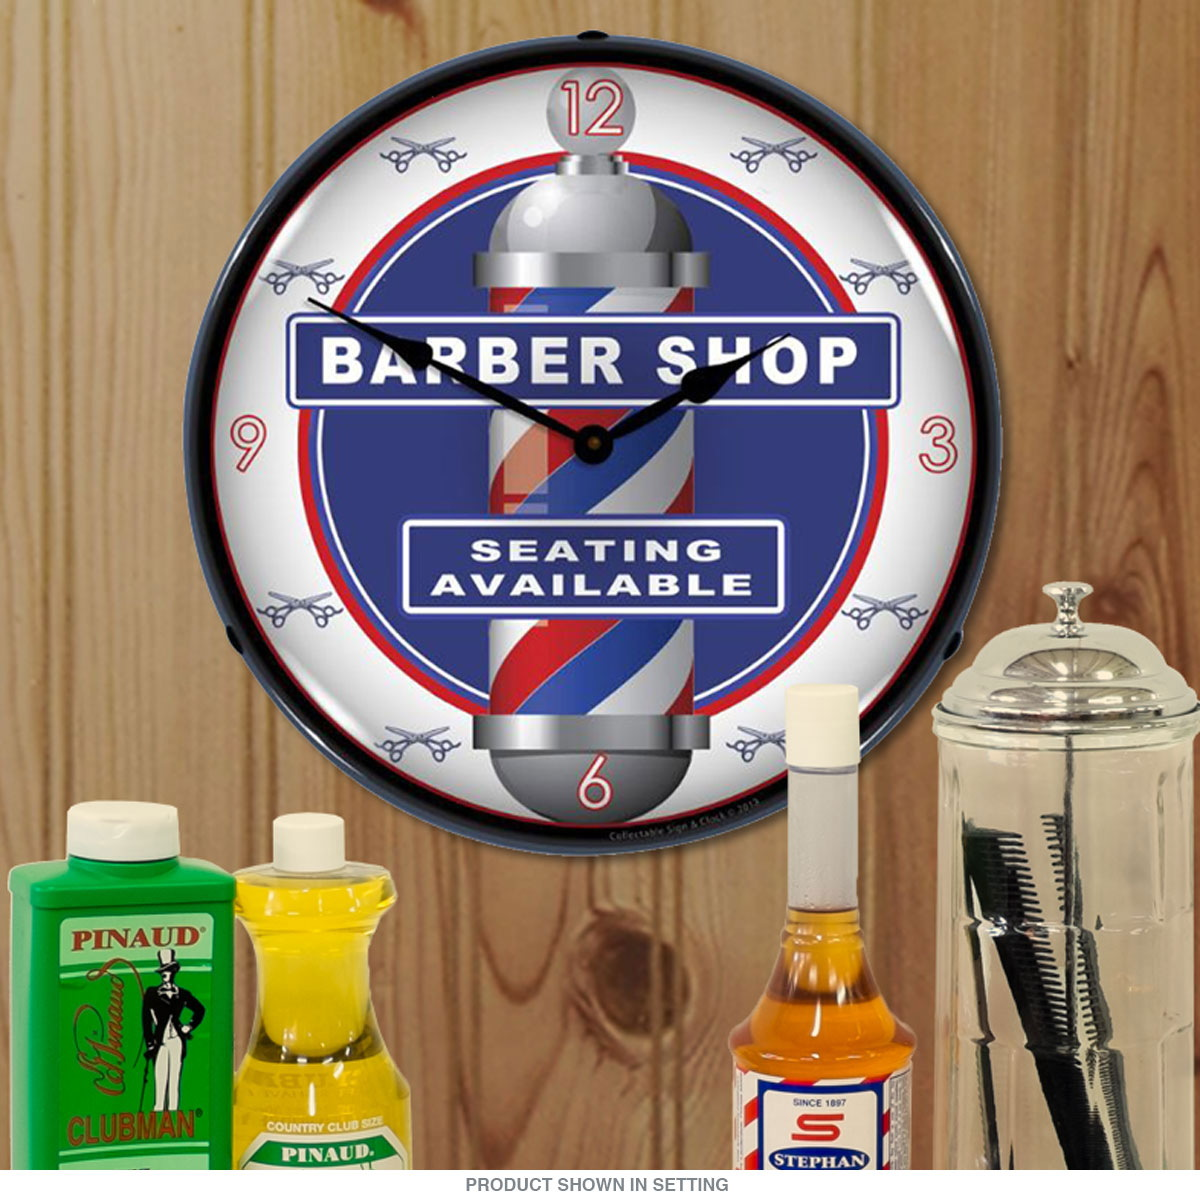 Barber Shop Pole Seating Available Light Up Clock